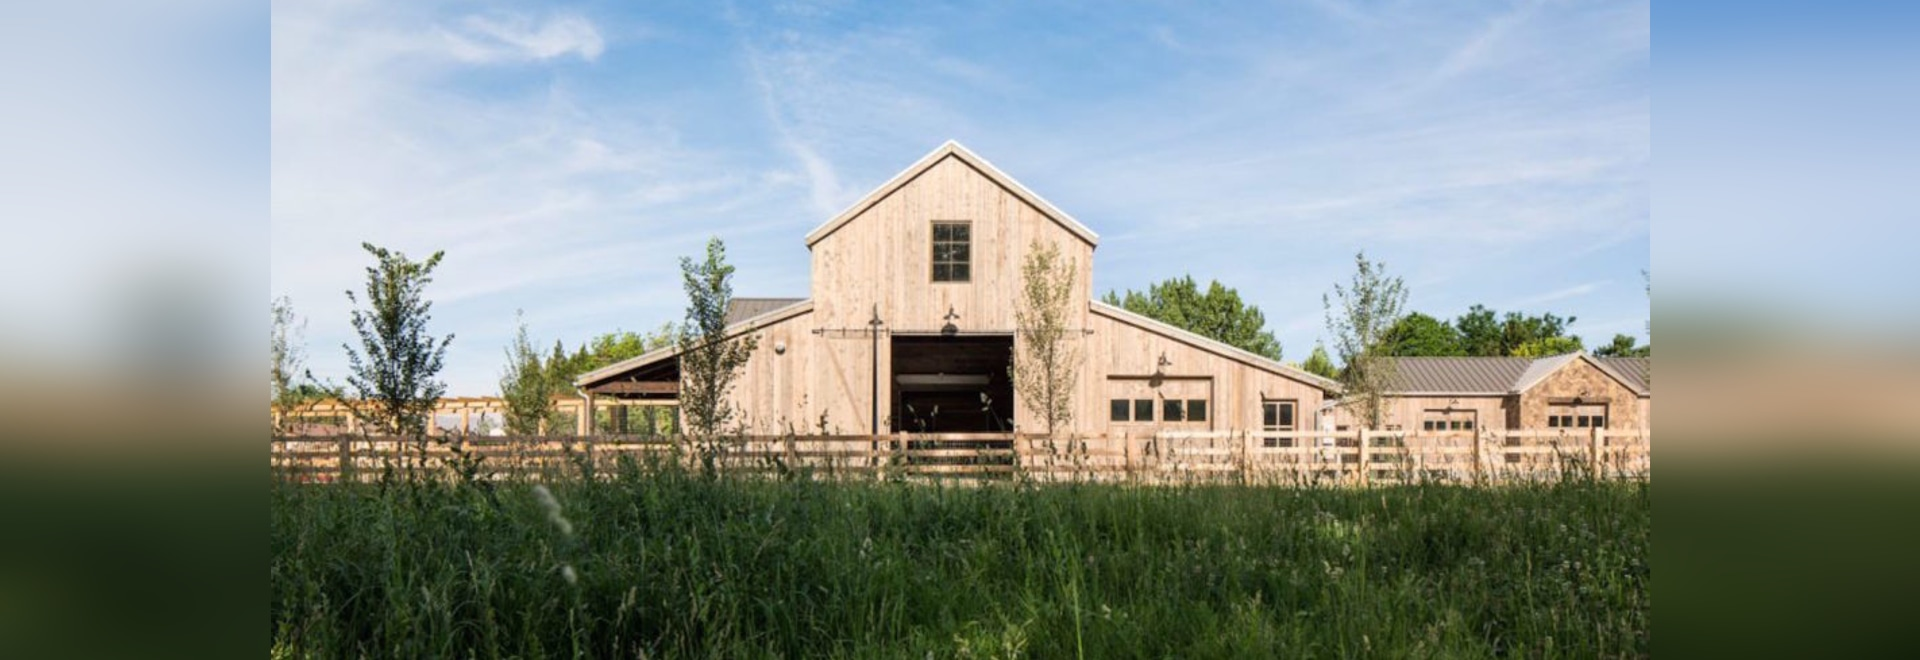 Beautiful modern barn produces food sustainably in Utah